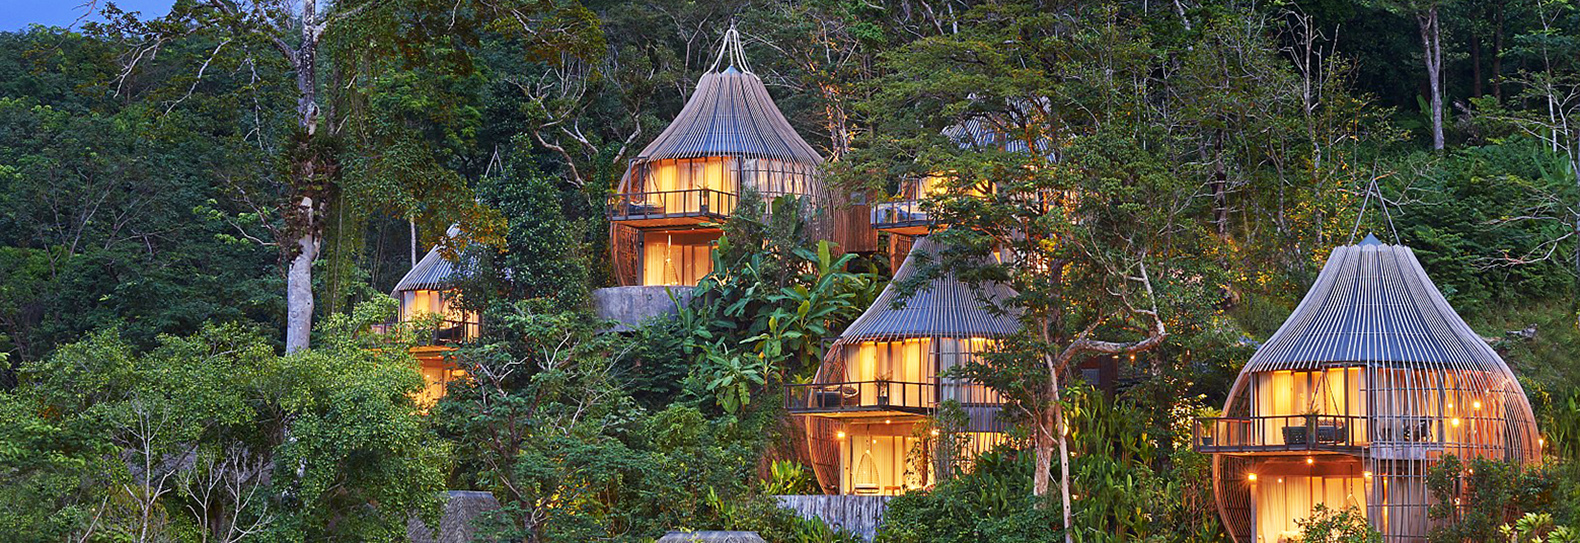 Thai eco-resort delights guests with woven pods and other sublime dwellings